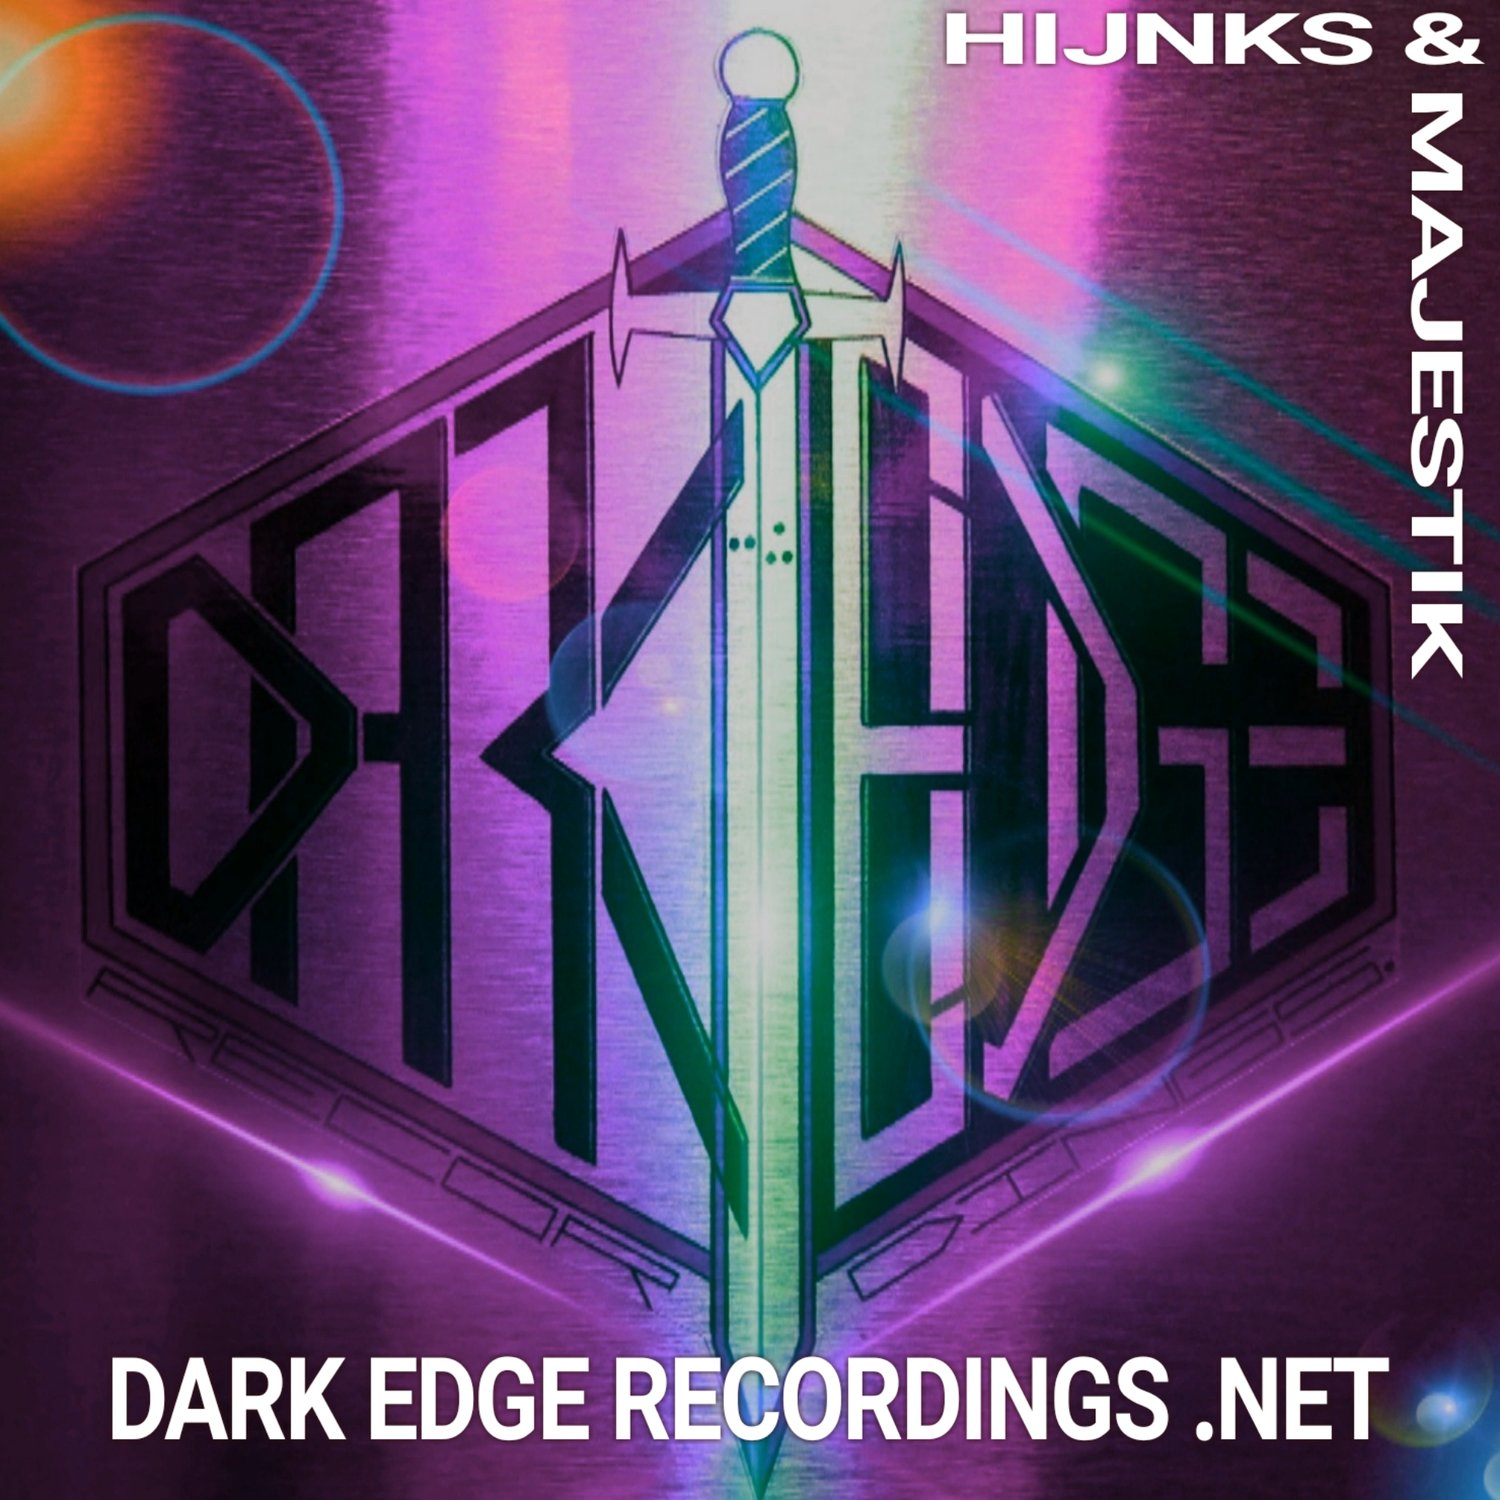 DARK EDGE RECORDINGS